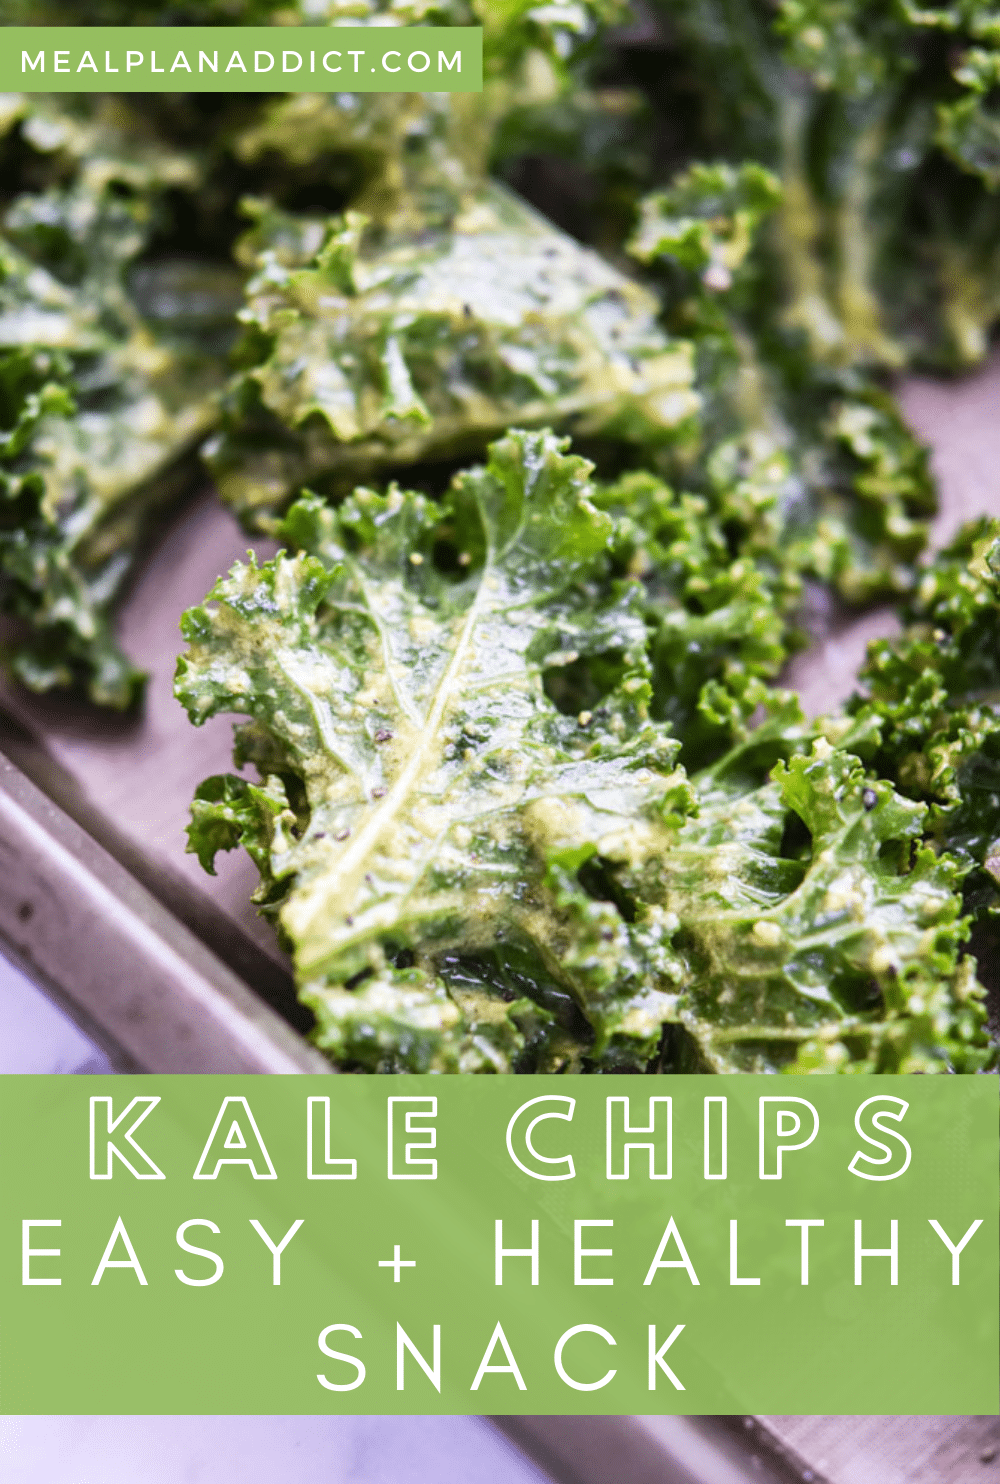 Kale Chips Easy and Healthy Snack | Meal Plan Addict